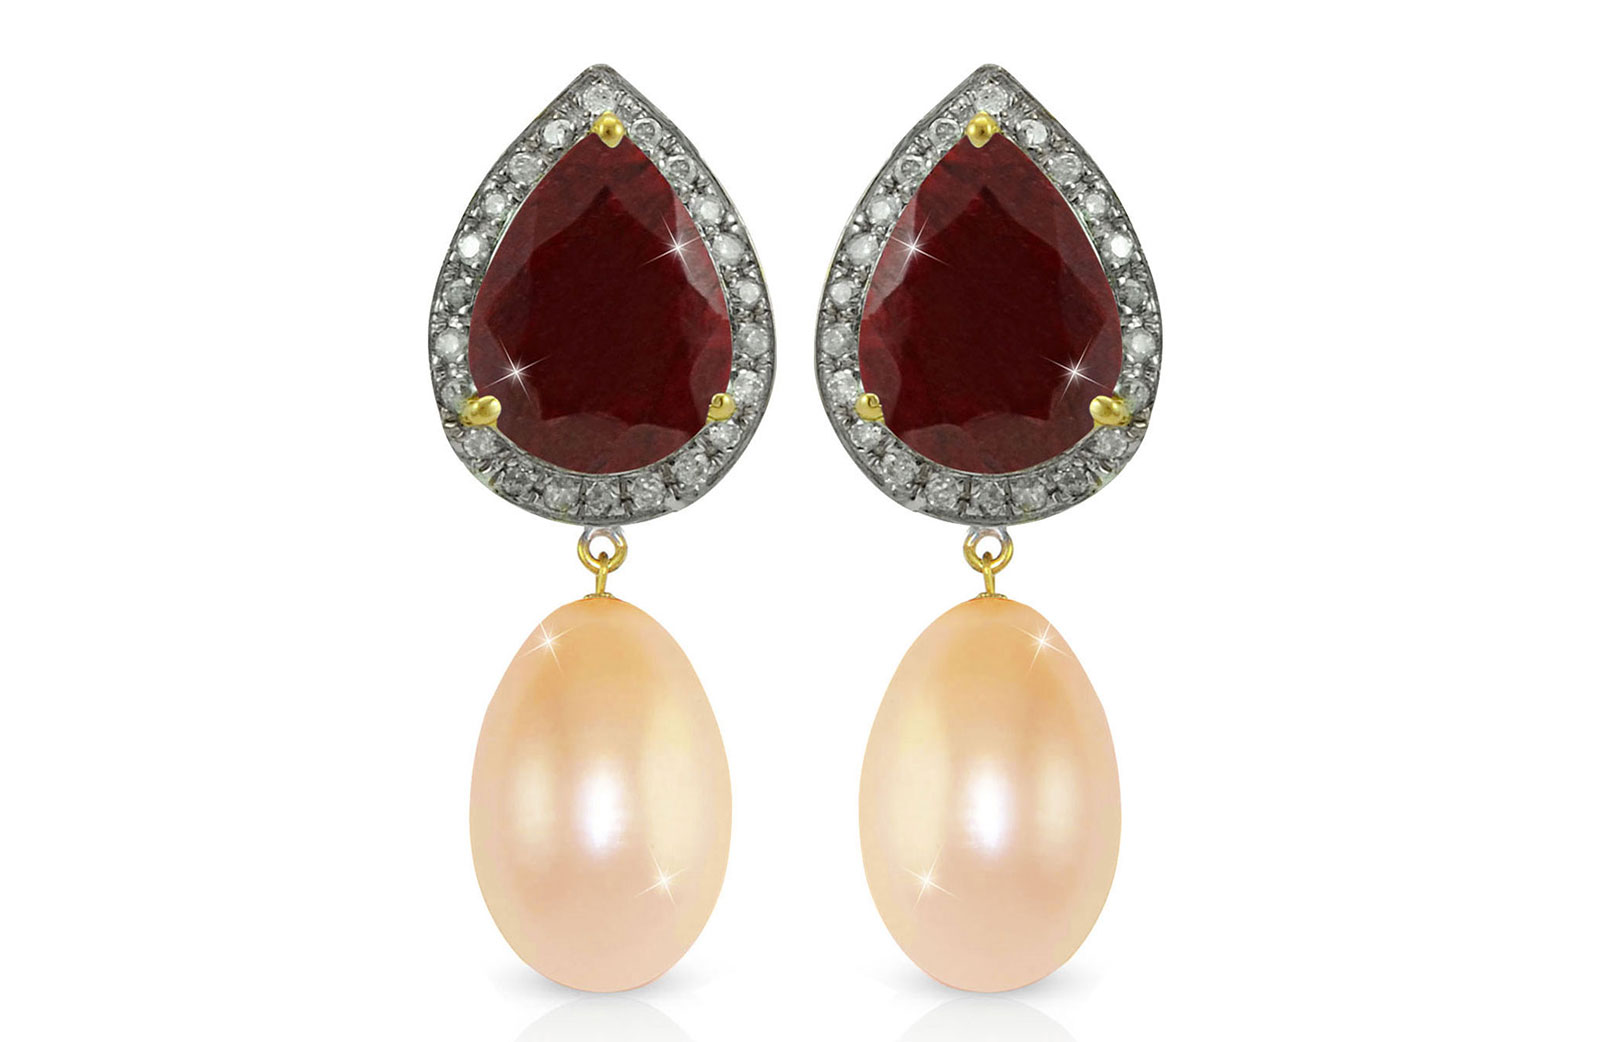 Vera Perla 18K Gold 0.24ct Diamonds, Ruby and 13mm Pink Pearl Earrings